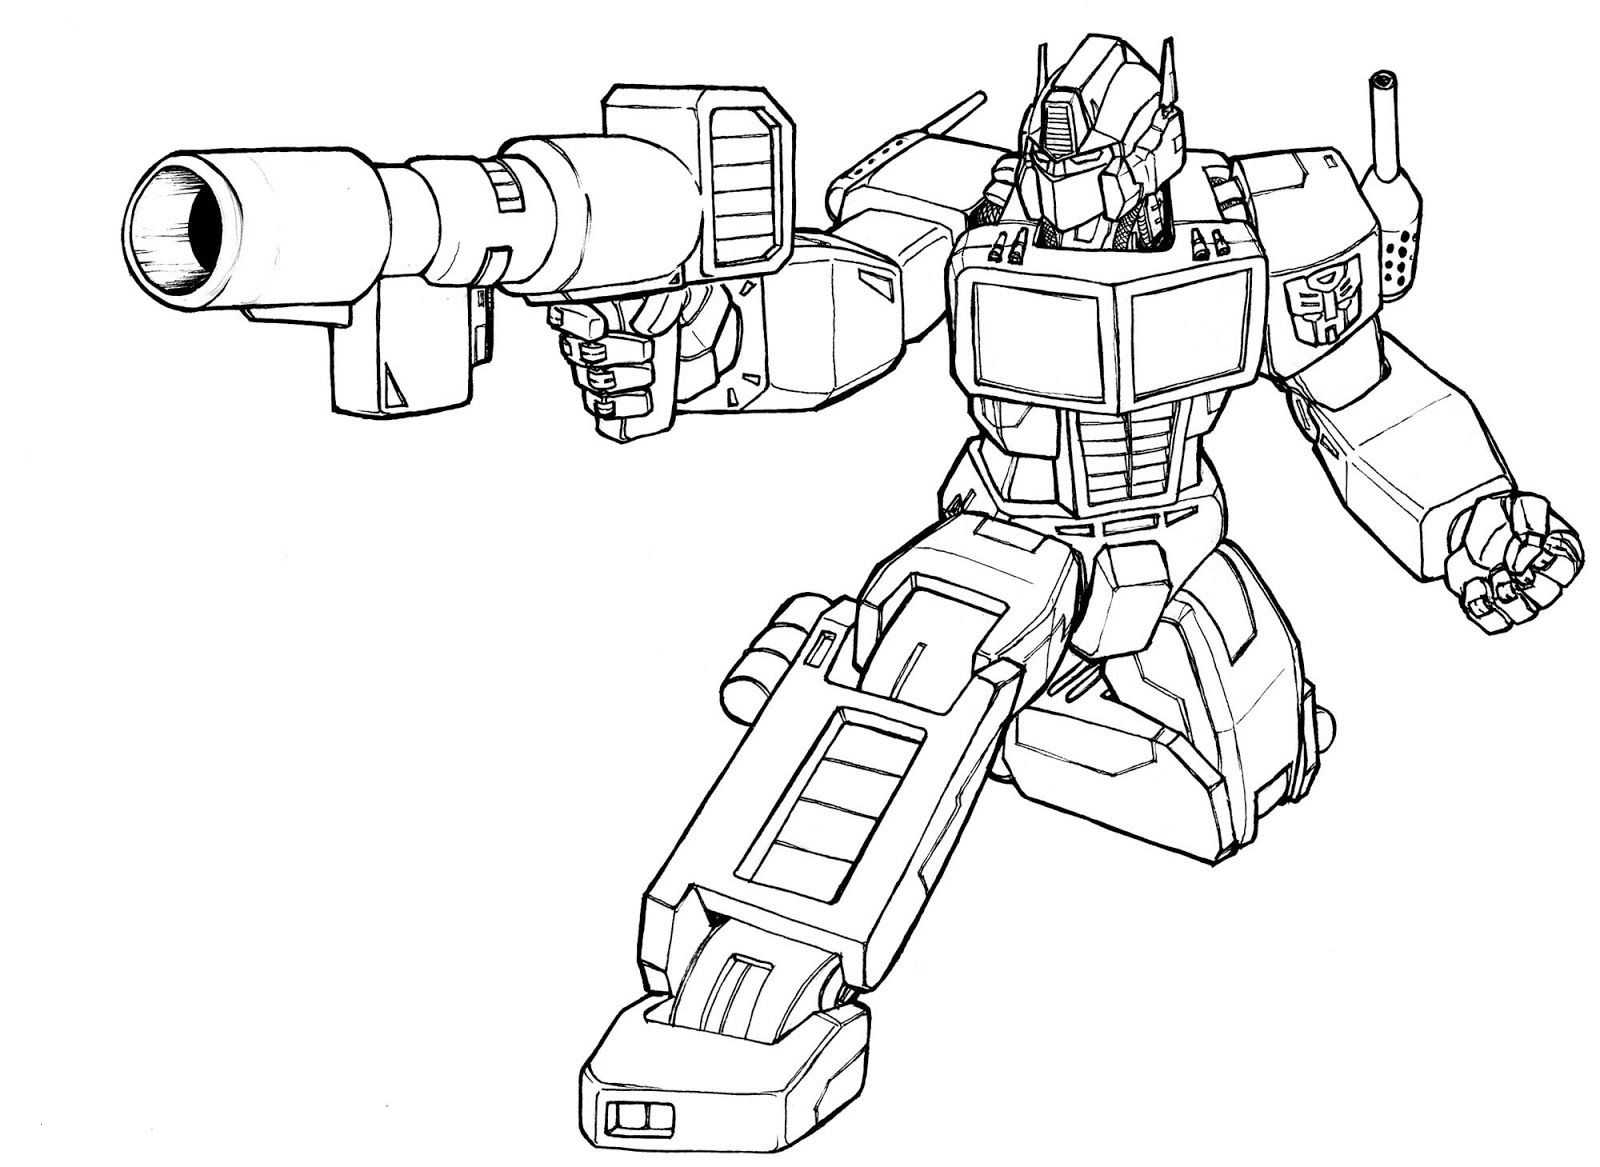 bumblebee transformer coloring pictures 21 bumblebee transformer coloring pages printable gallery pictures transformer bumblebee coloring